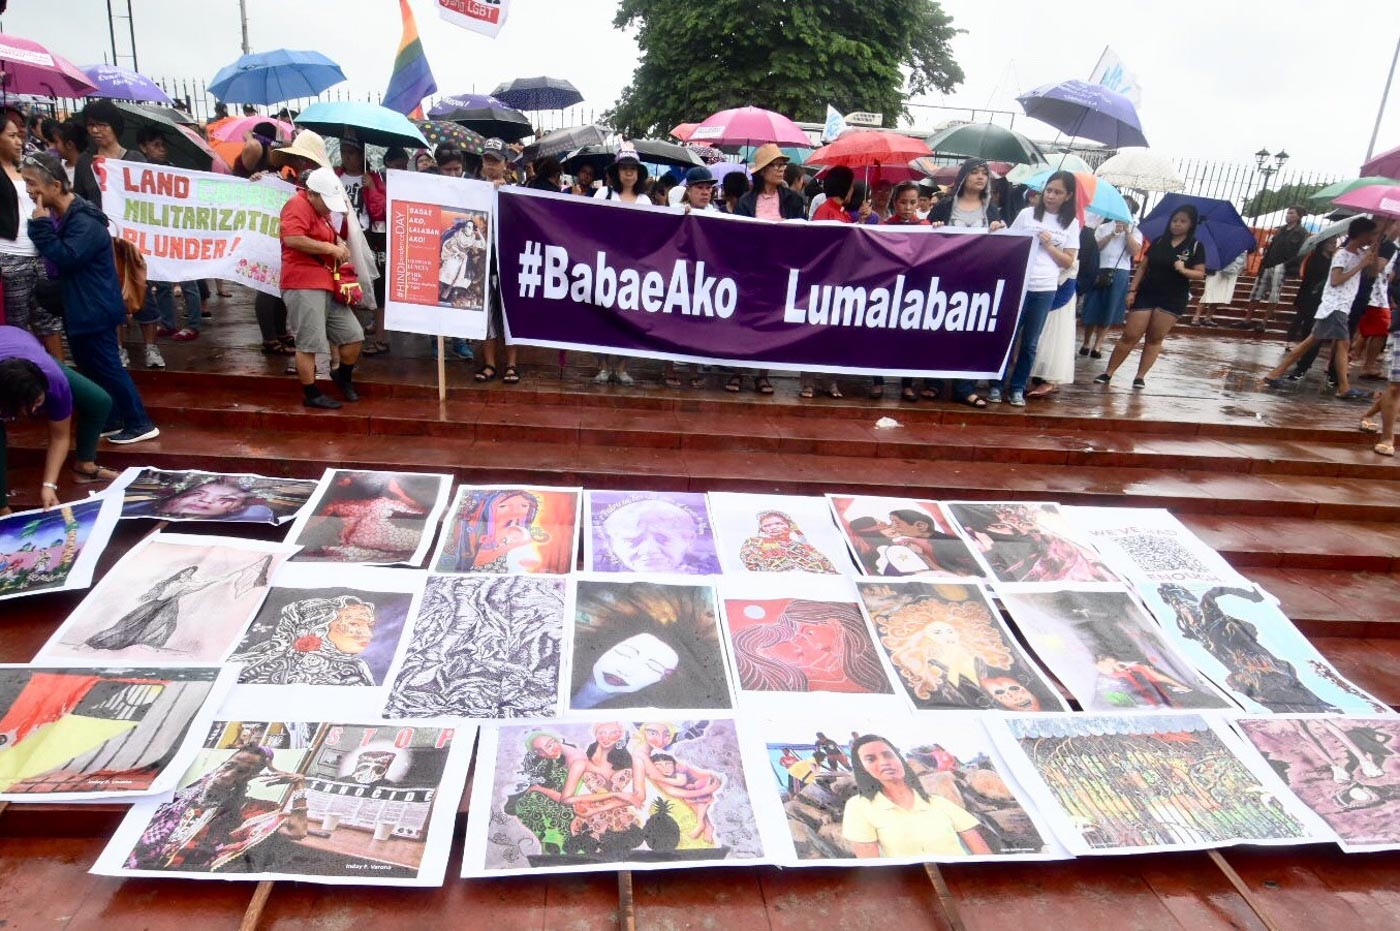 HINDIPENDENCE. The #BabaeAko march is part of the #HINDIpendence day protest activities organized by opposition groups against the Duterte administration. Photo by Angie de Silva/Rappler